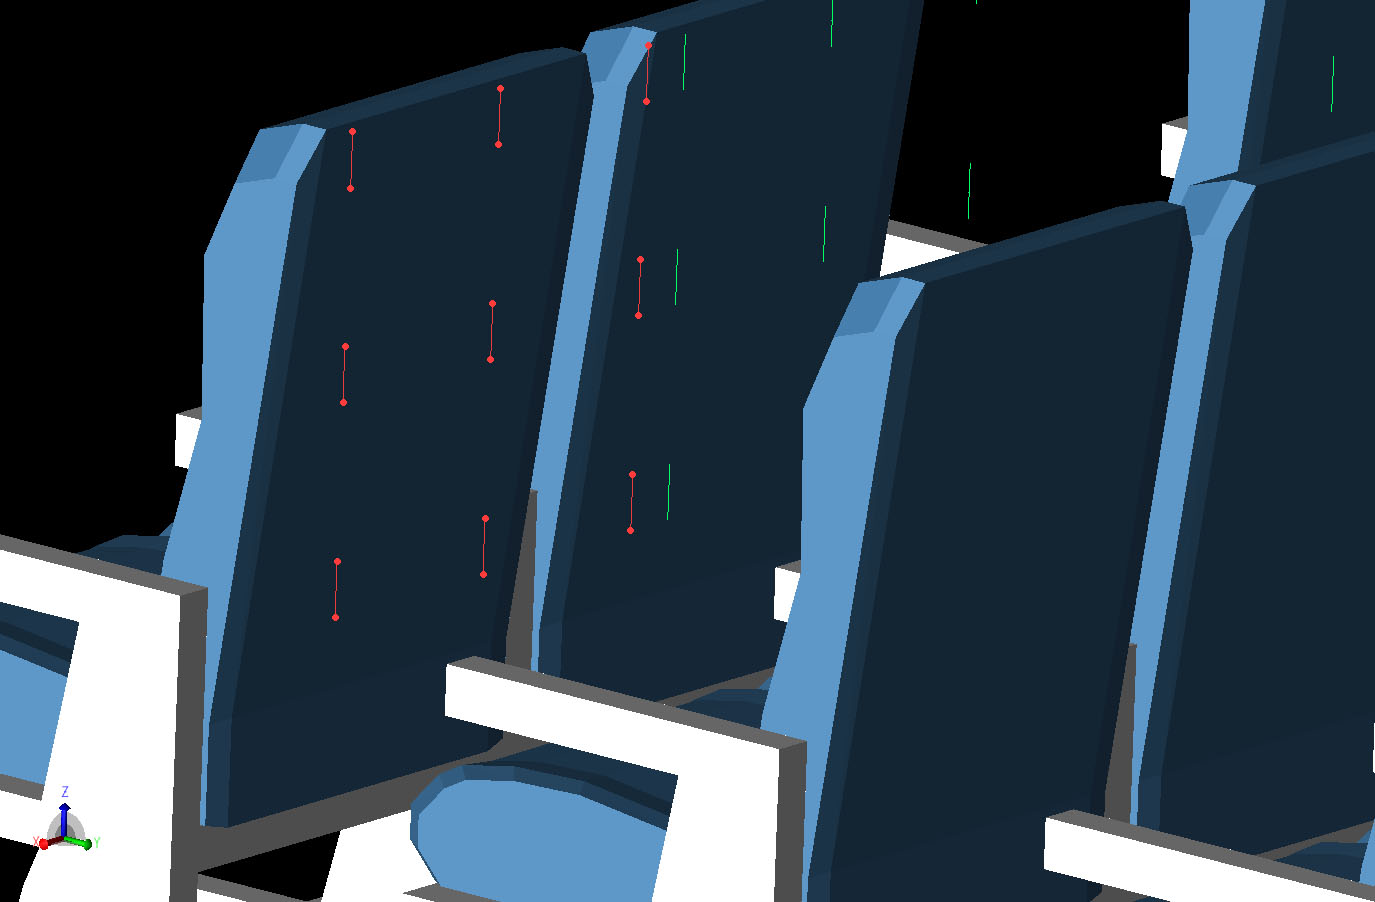 Figure 3  The 3x3 grid of sensor locations defined as dipoles is shown behind one of the seat back locations. The sensor grids are located behind the seats in every other row of the cabin for the first three columns of seats.